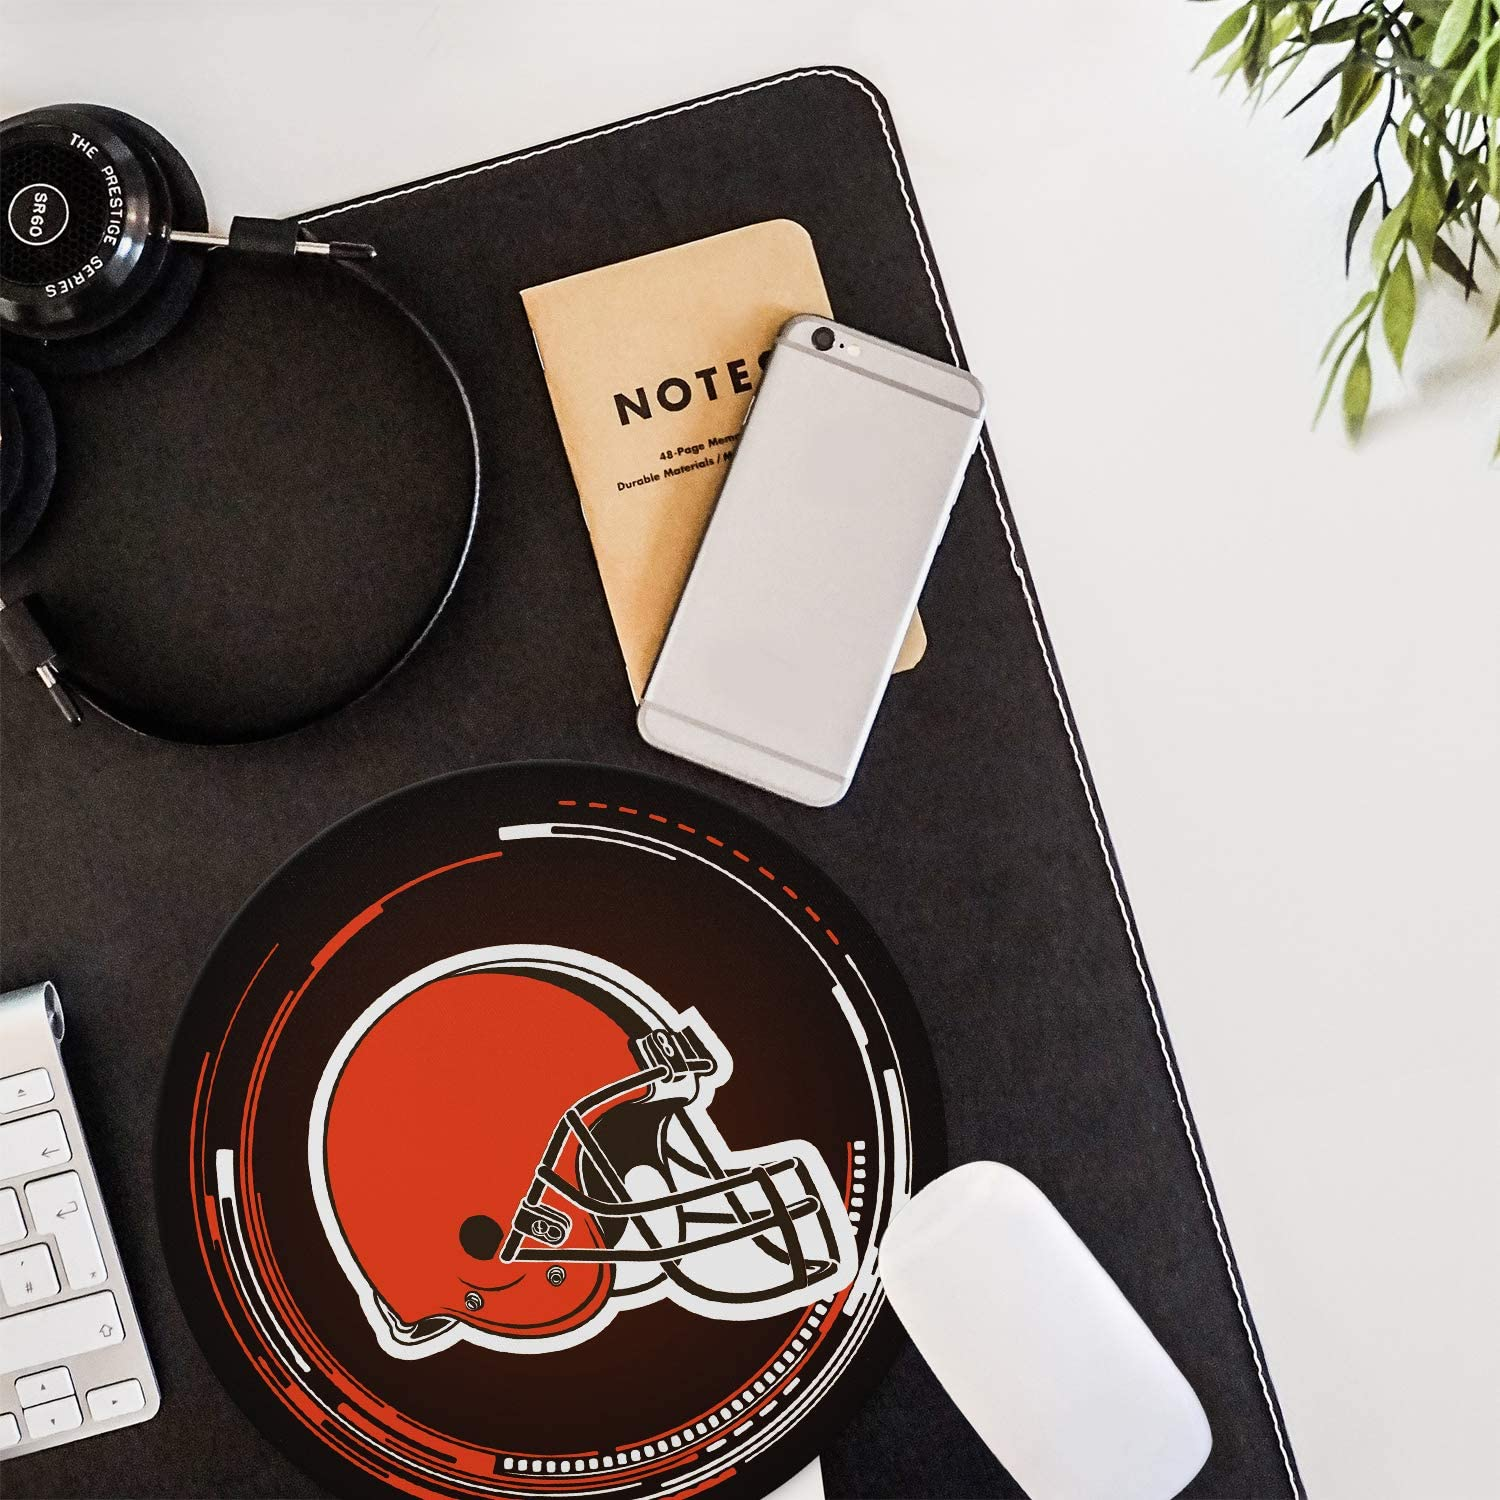 Round Mouse pad Rubber Base for Stable Grip Logo Creative Custom Non-Slip Mouse Mat| Improved Precision and Speed CANDICE NFL Mouse Mat//Gaming Mouse Pad 8.7Inch